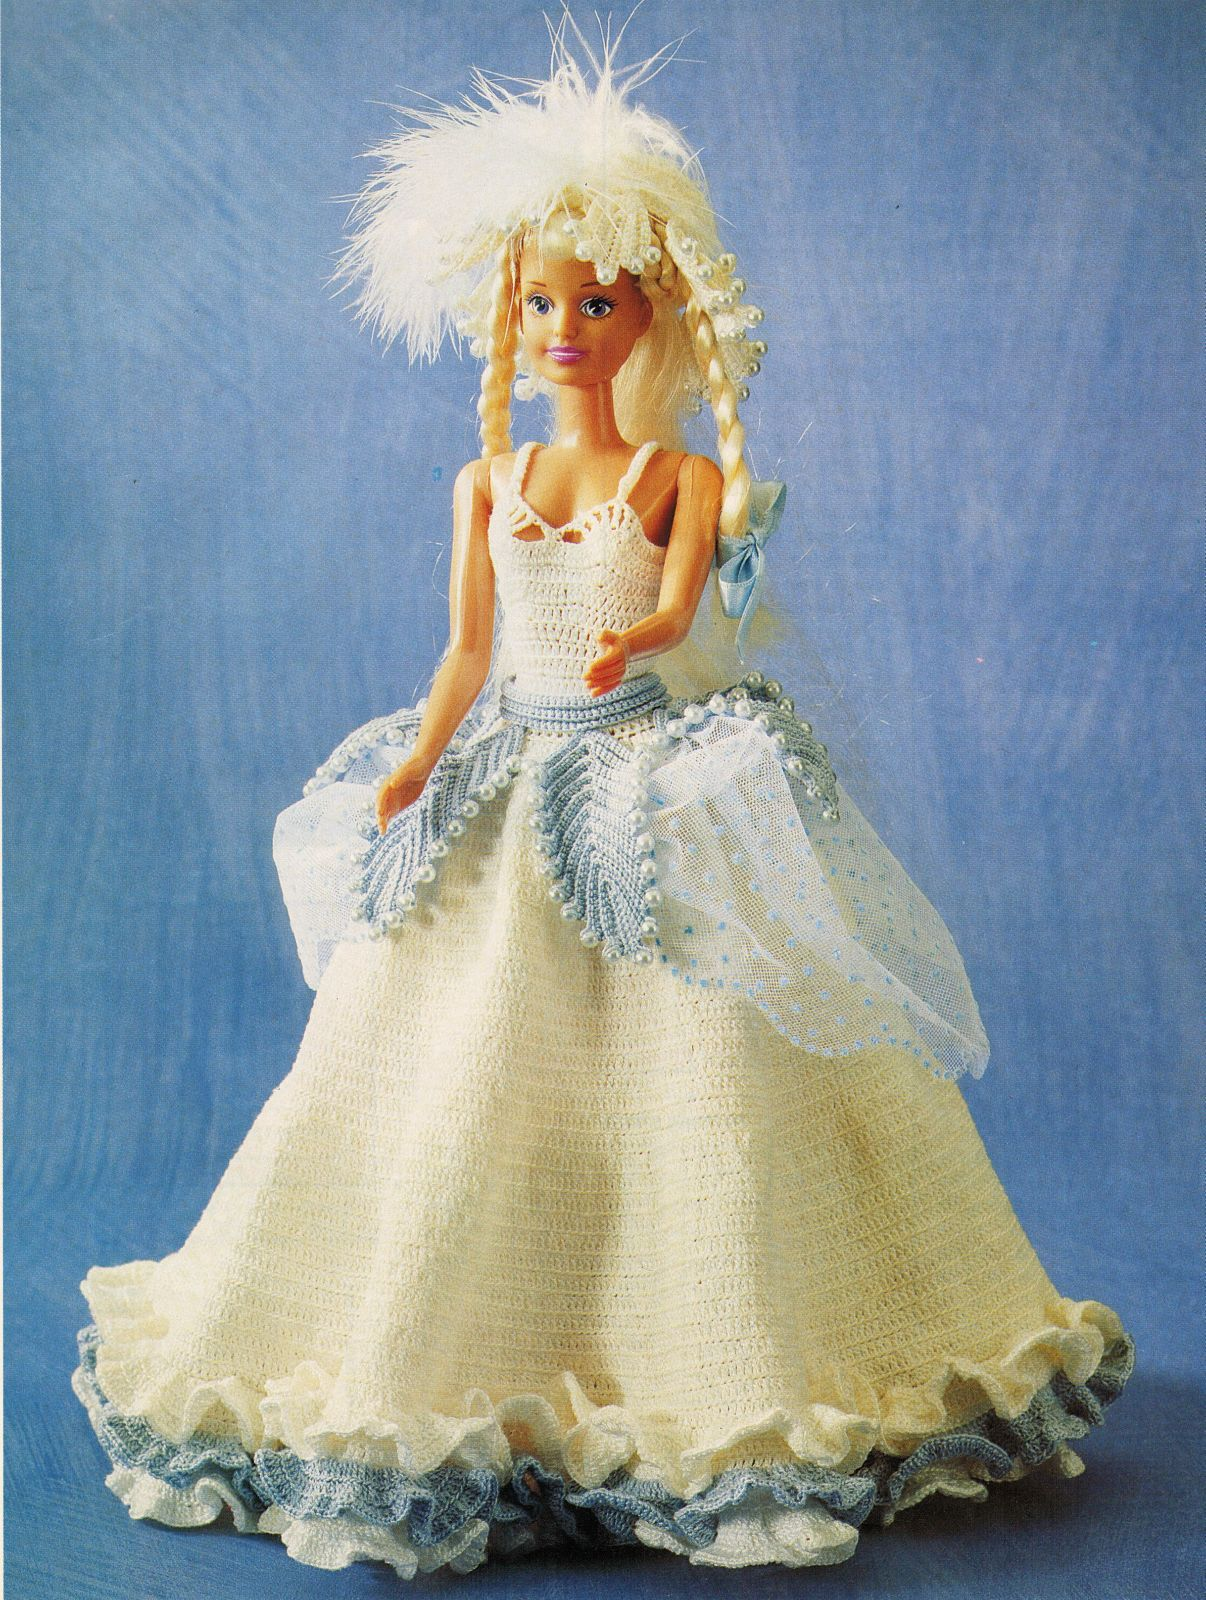 Barbie Clothes English Princess Lucy Dress Hat Bag Bracelet CROCHET Pattern image 1